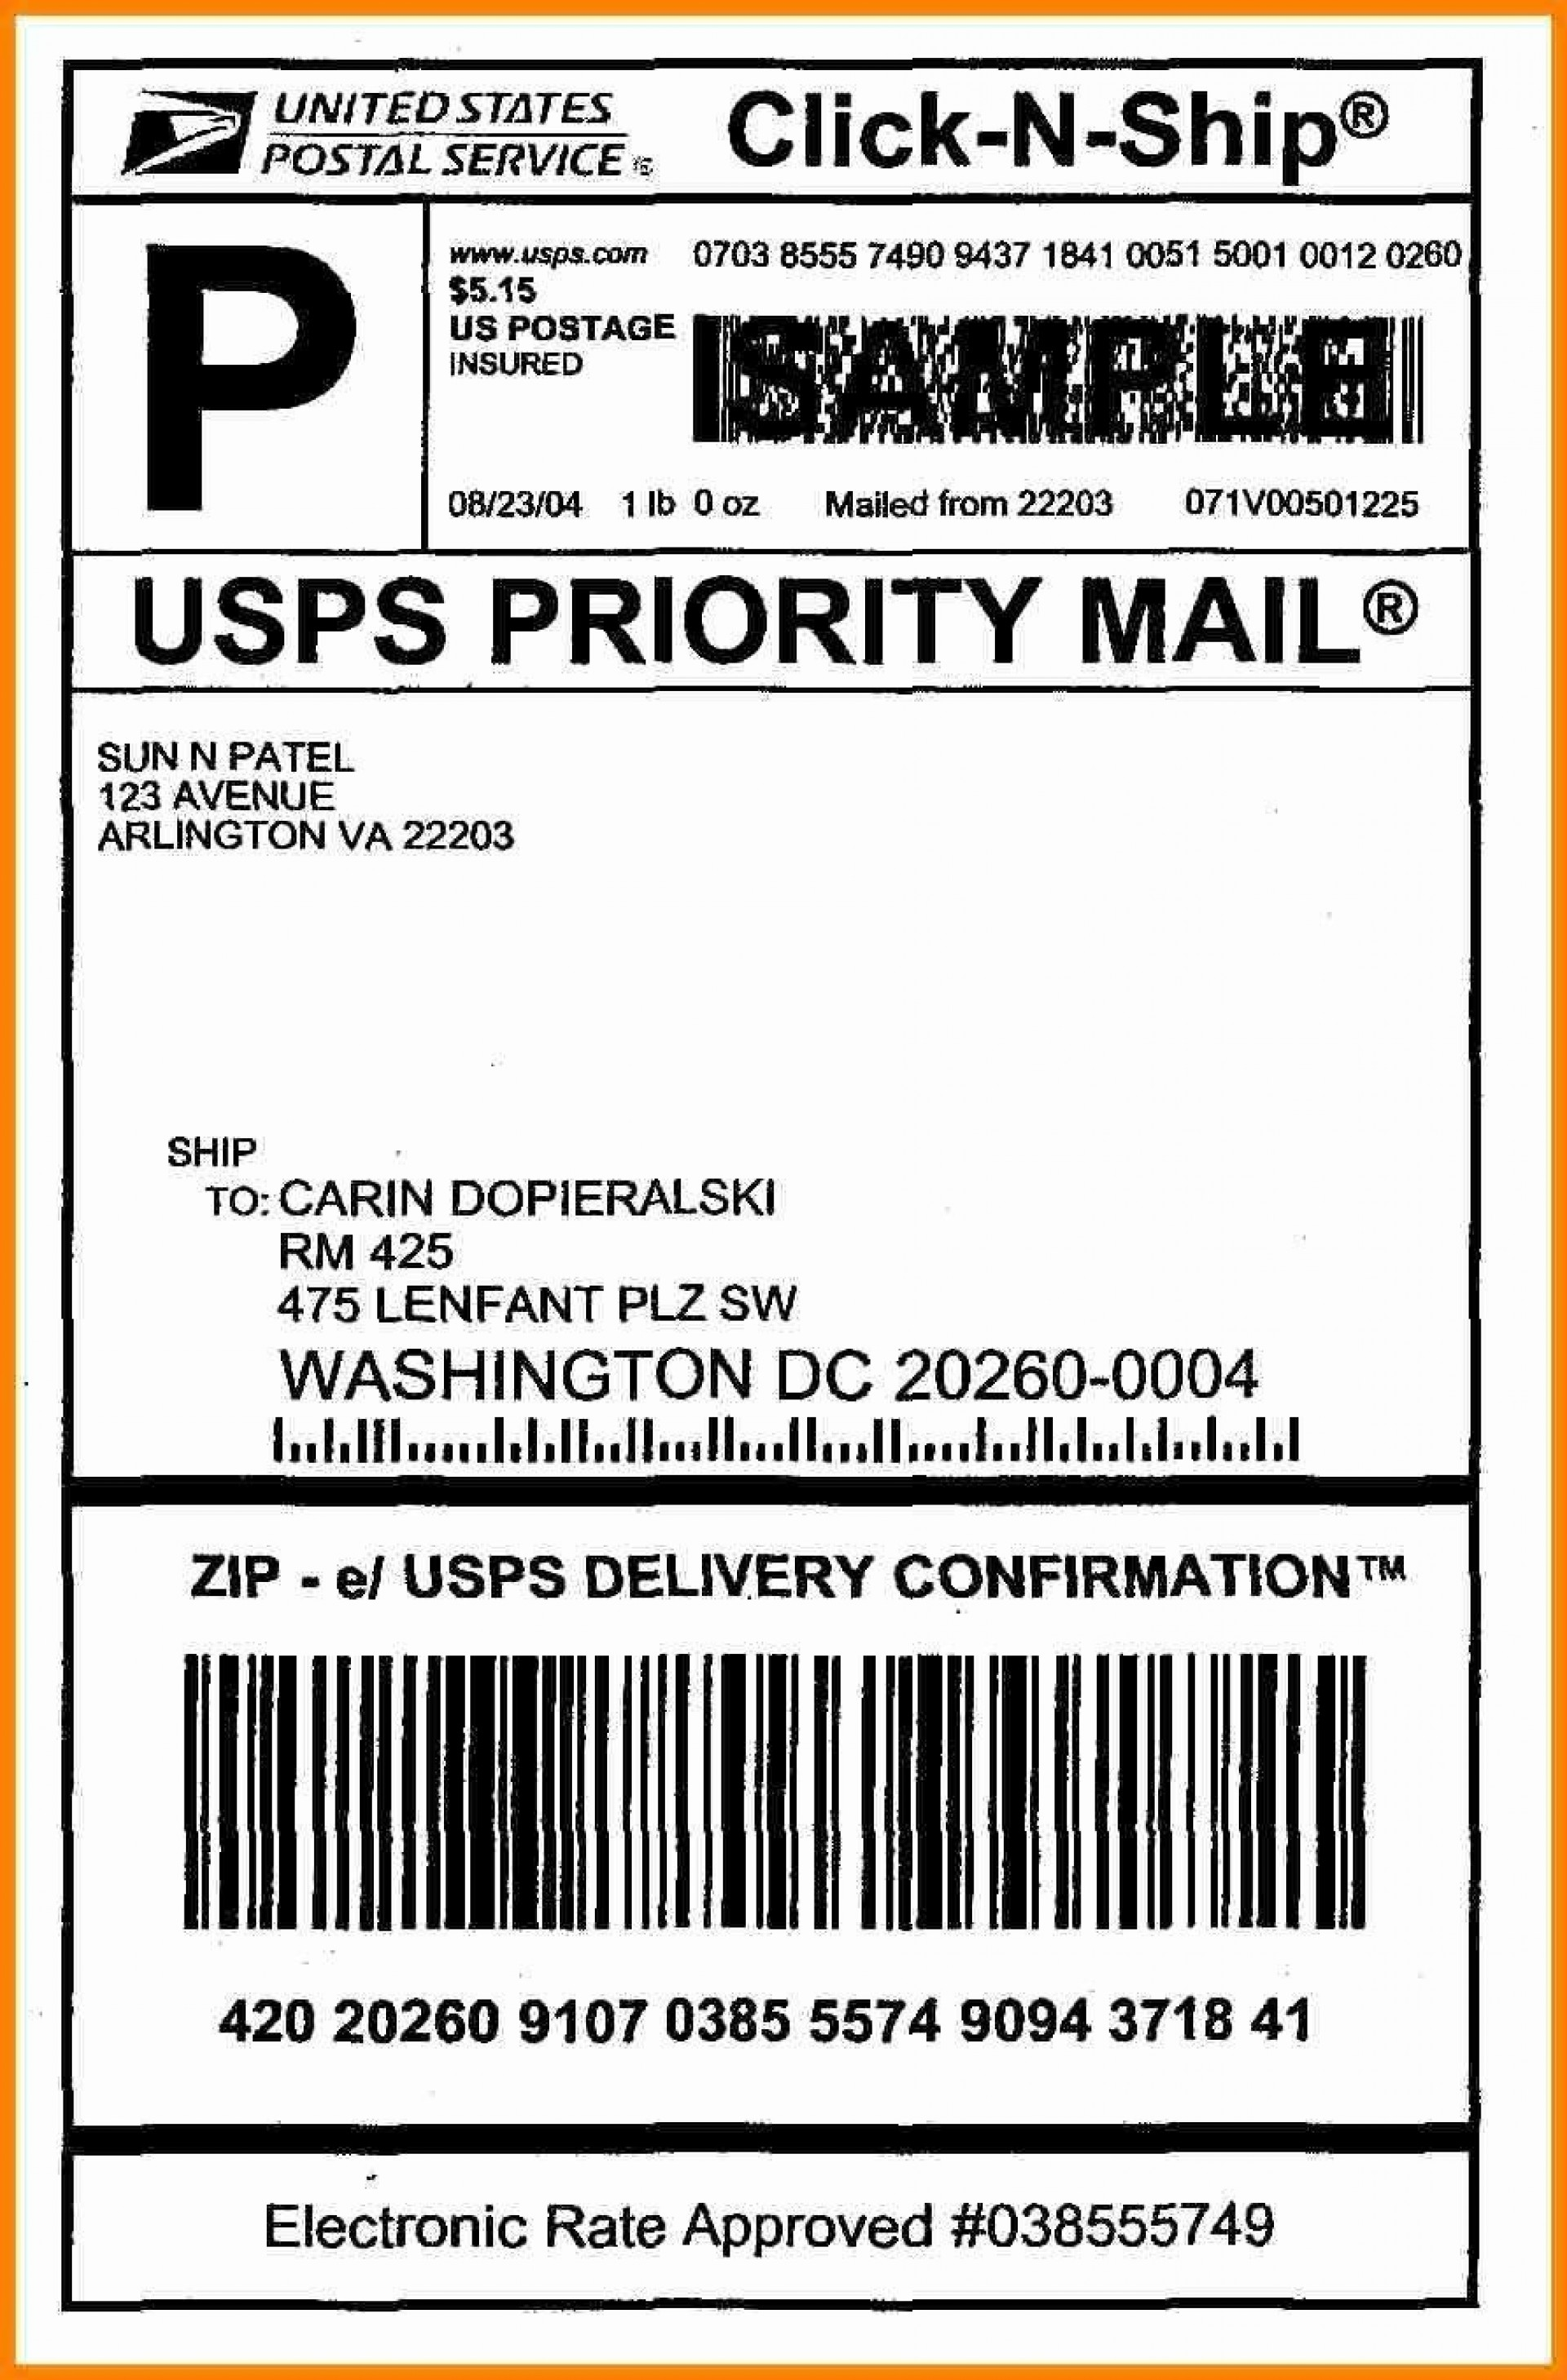 006 Best Free Usp Shipping Label Template Highest Clarity 1920